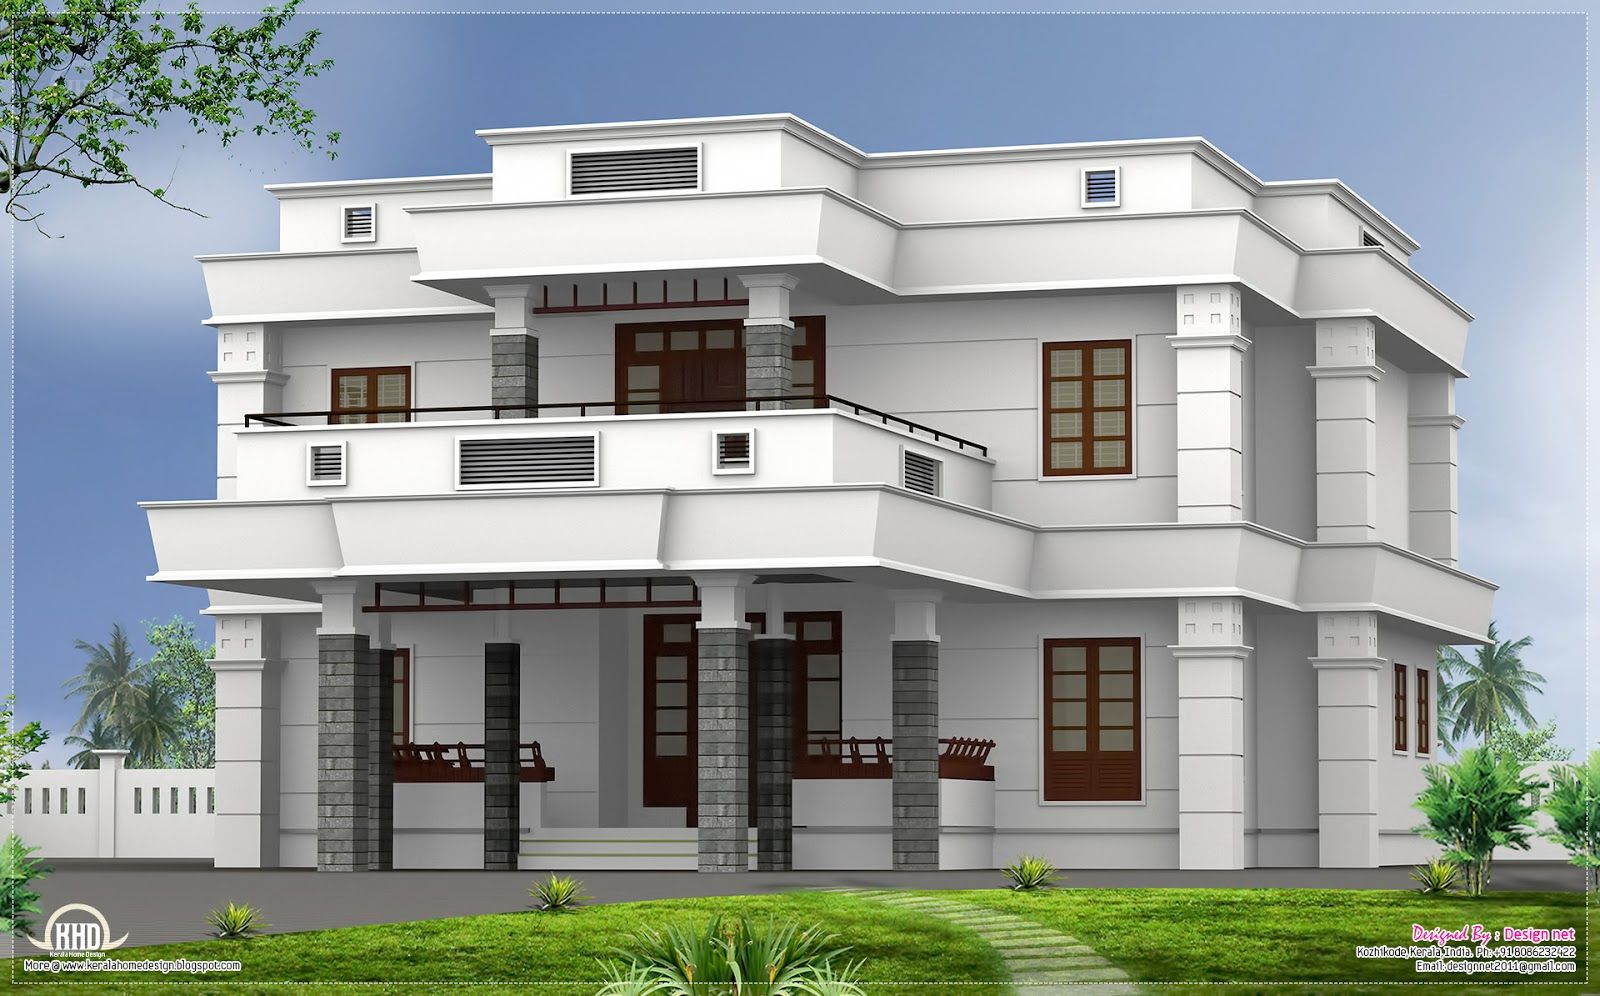 Flat roof homes designs bhk modern flat roof house for Exterior house designs indian style